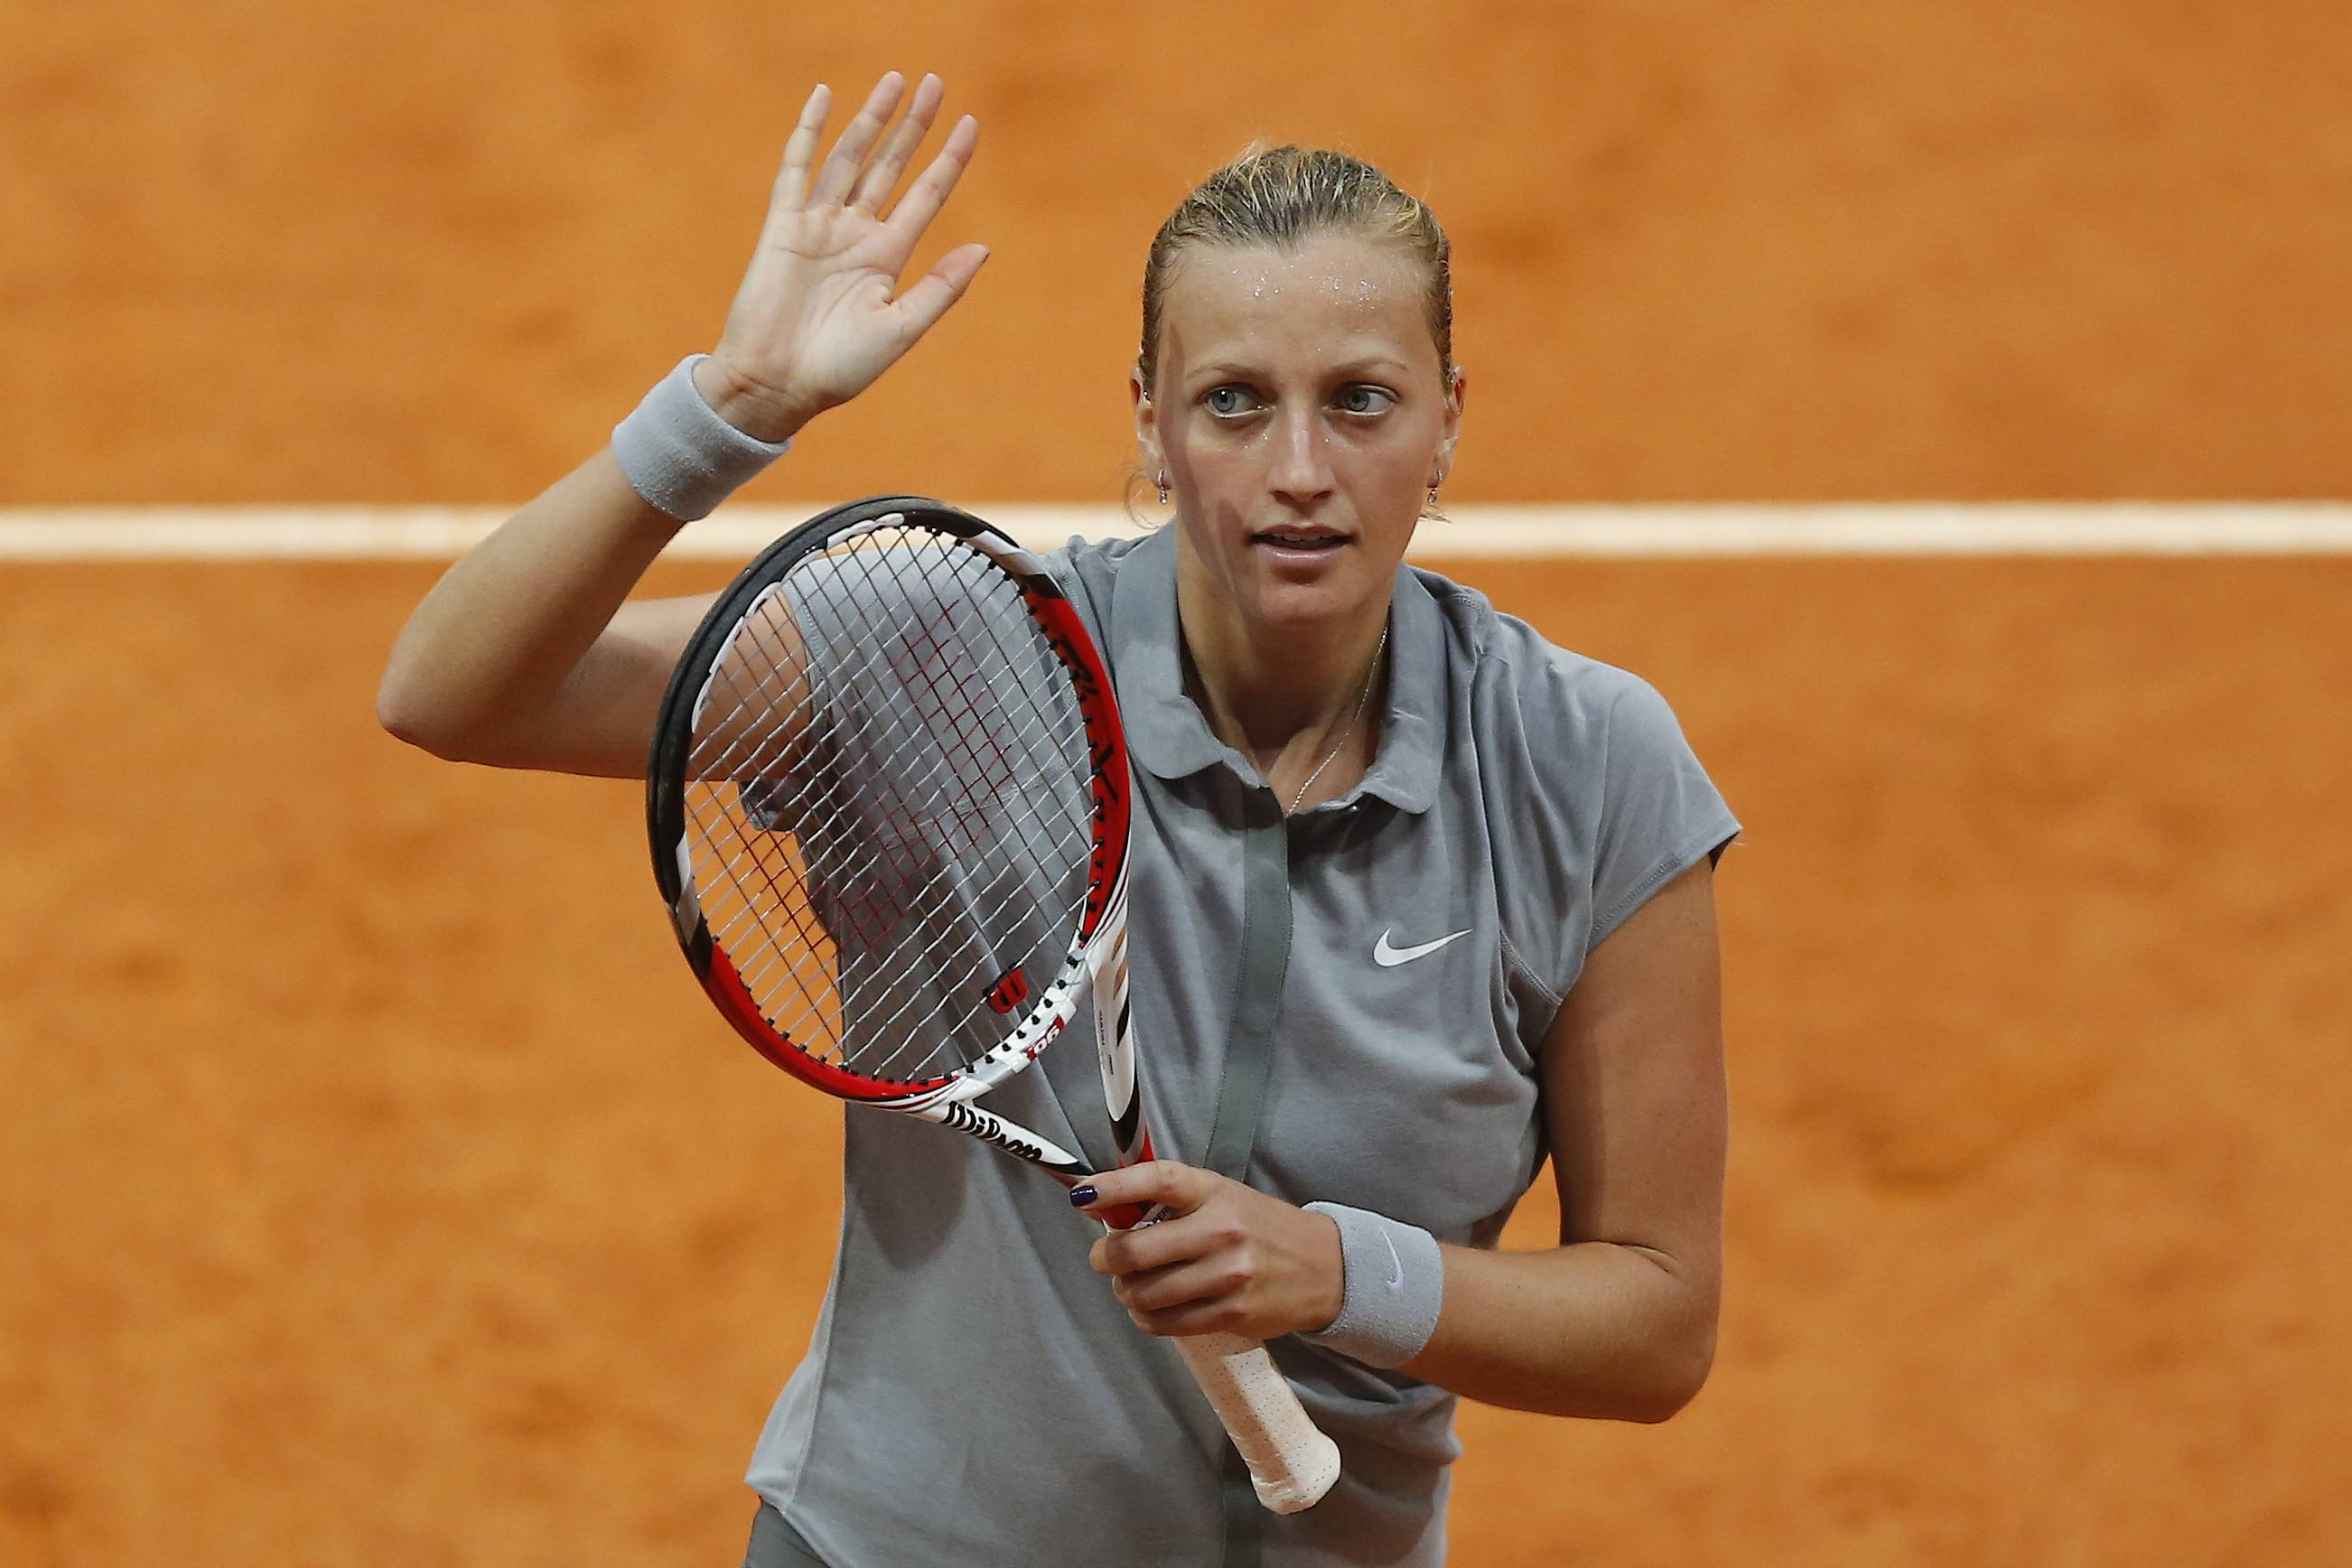 Petra Kvitova from the Czech Republic celebrates her victory during a Madrid Open tennis tournament match against Varvara Lepchenko from U.S., in Madrid, Spain, Tuesday, May 6, 2014.